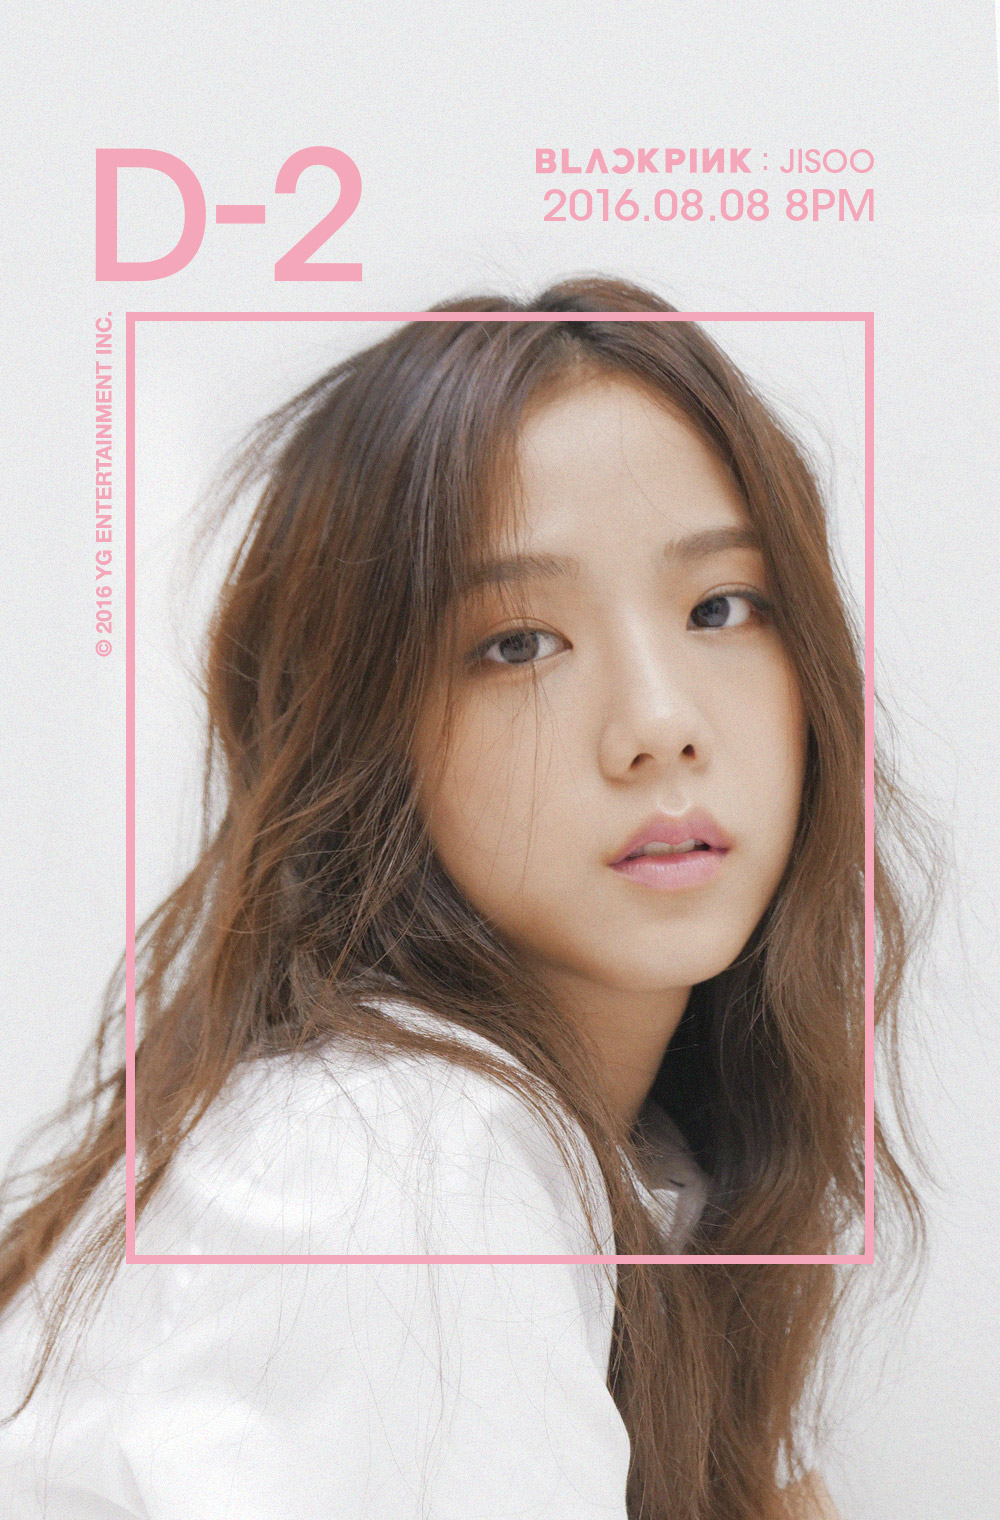 BLACKPINK's Jisoo And Group Teasers Revealed